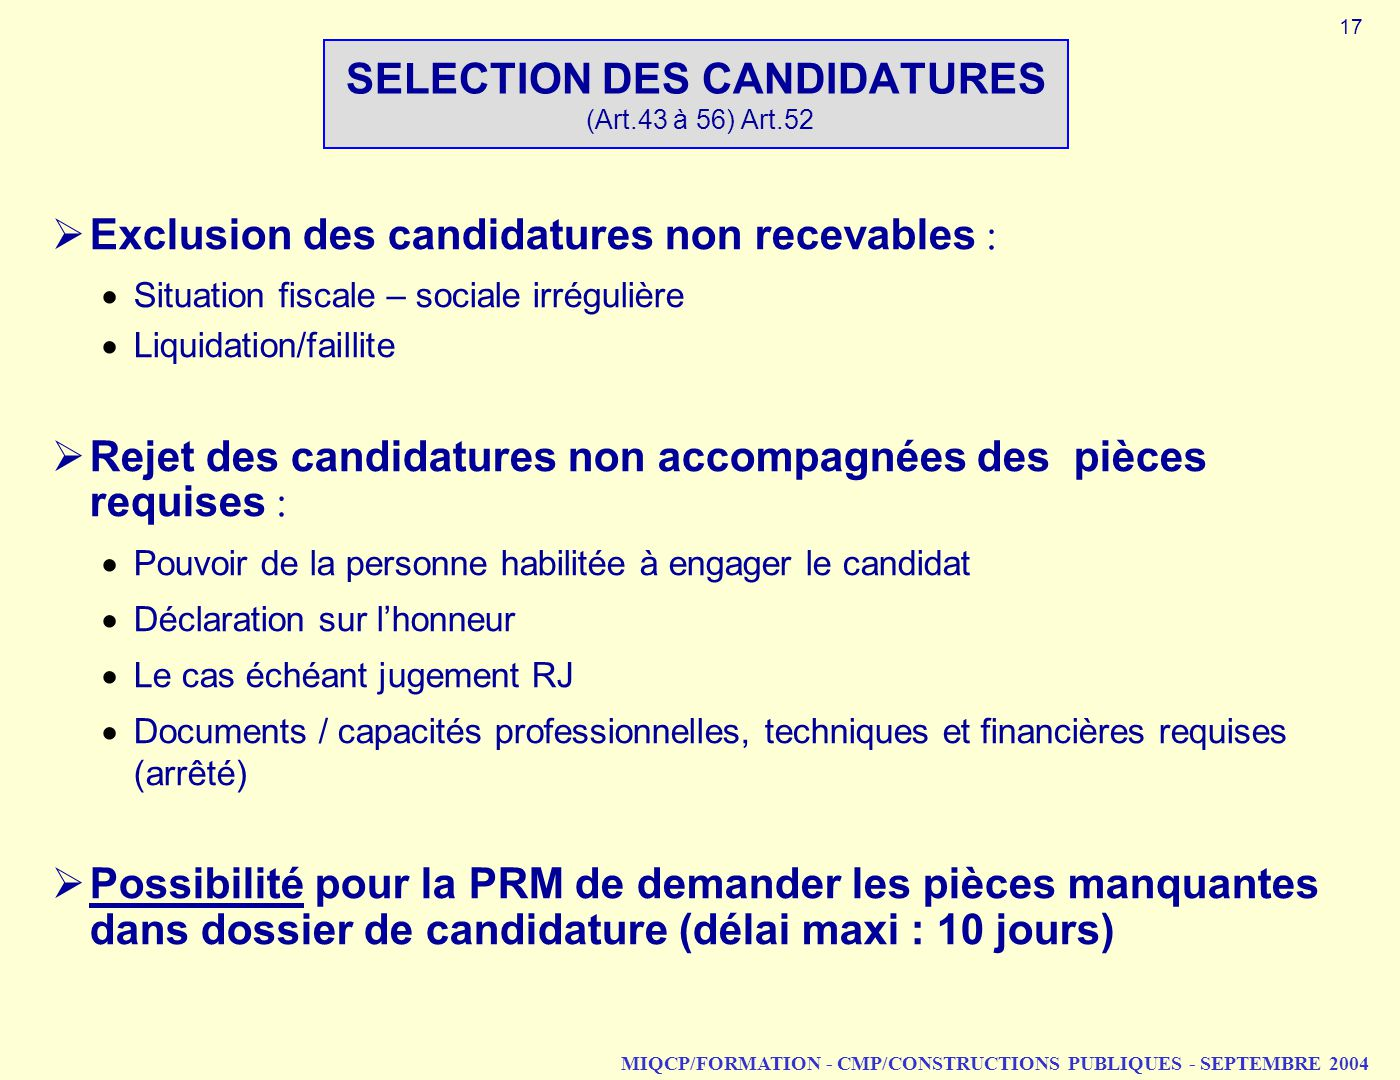 SELECTION DES CANDIDATURES (Art.43 à 56) Art.52